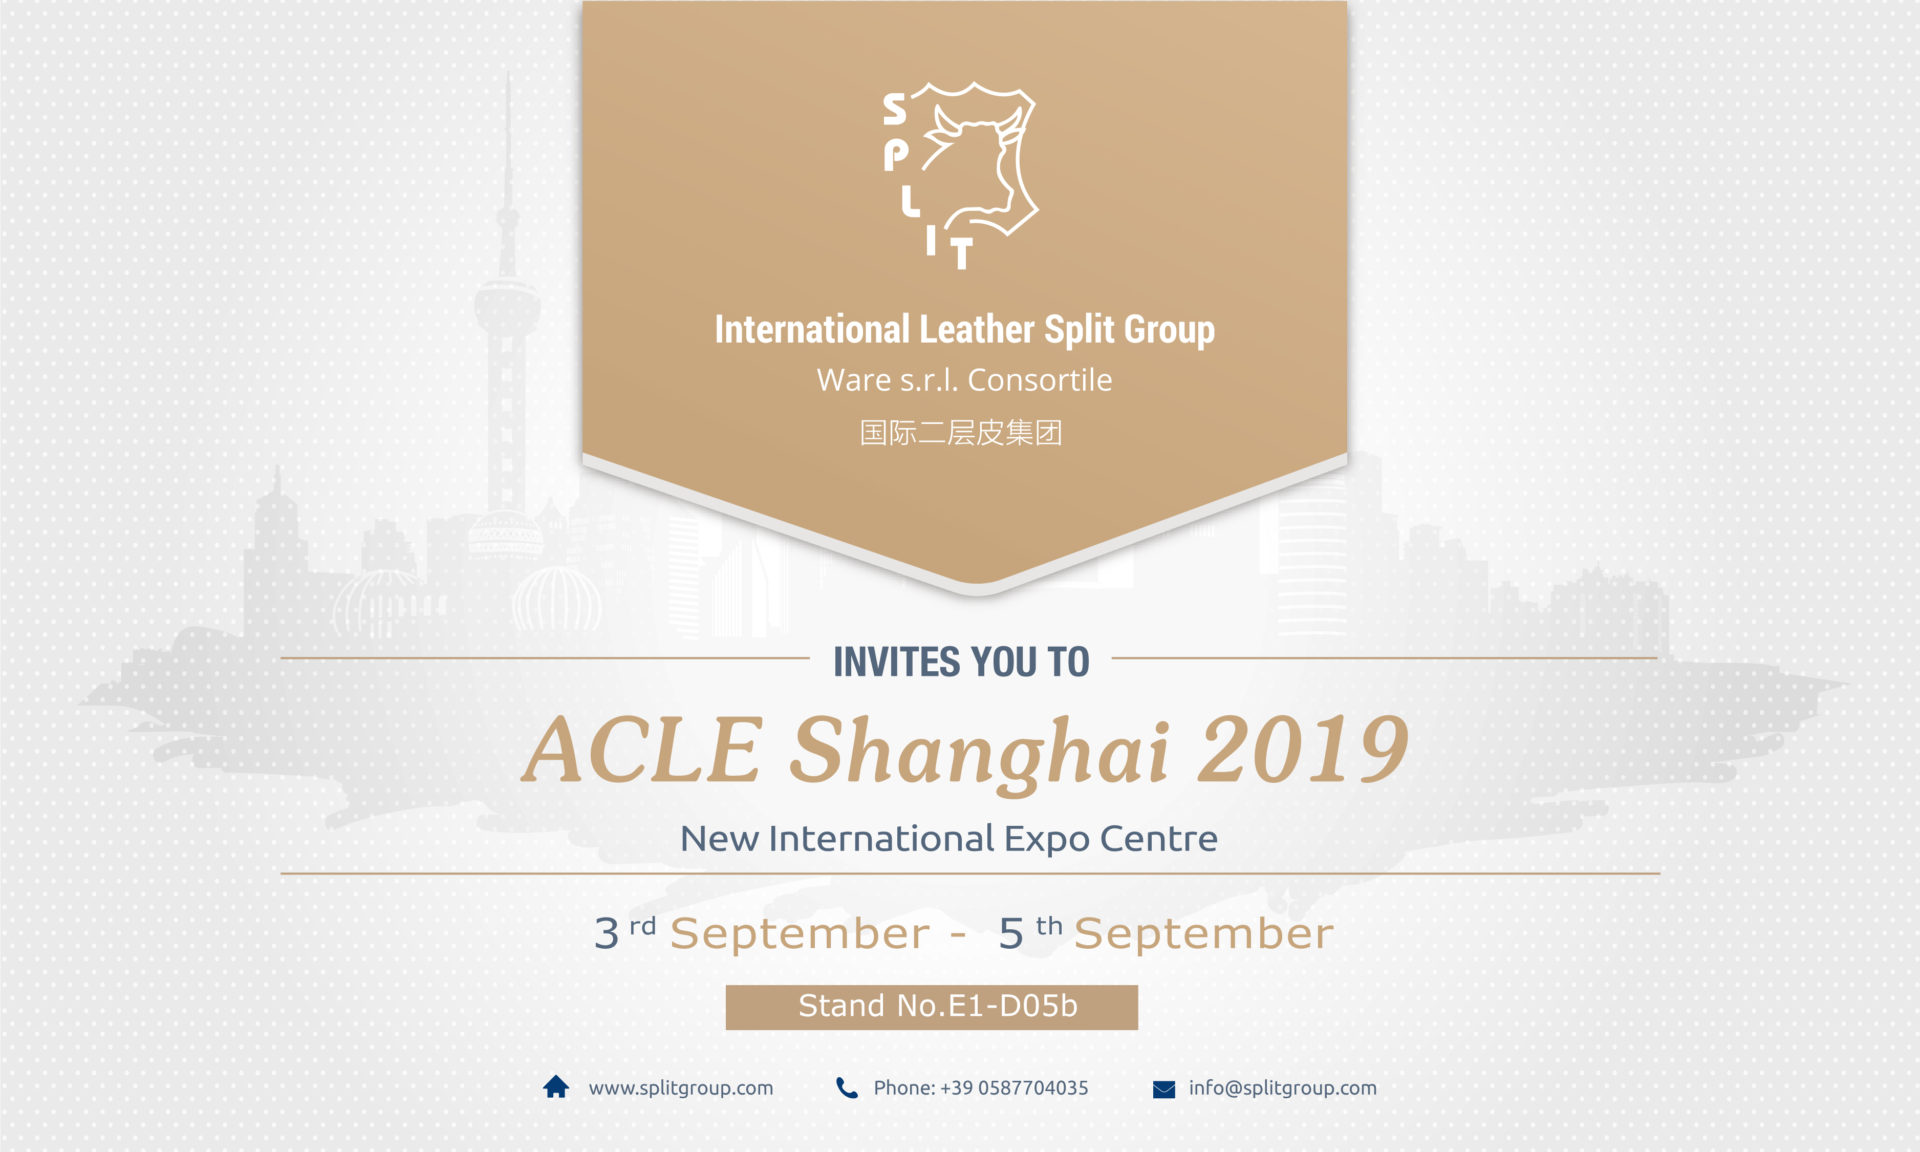 ACLE Shanghai 2019 - International Leather Split Group